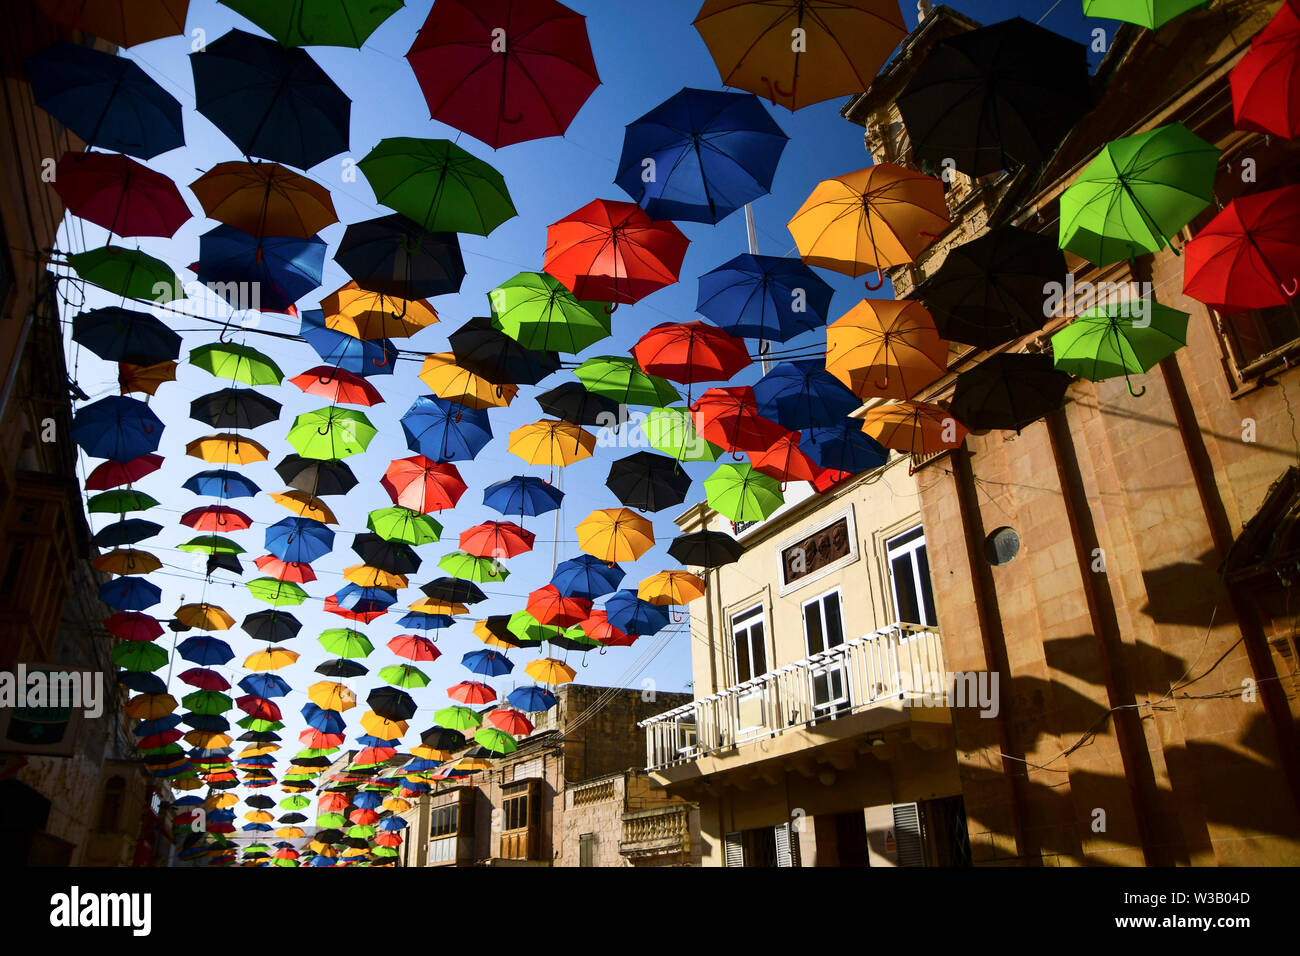 Zabbar. 13th July, 2019. Photo taken on July 13, 2019 shows umbrellas suspended in the air along a street to bring back the popular 'Umbrella Street' spectacle in Zabbar, Malta. Credit: Jonathan Borg/Xinhua/Alamy Live News - Stock Image